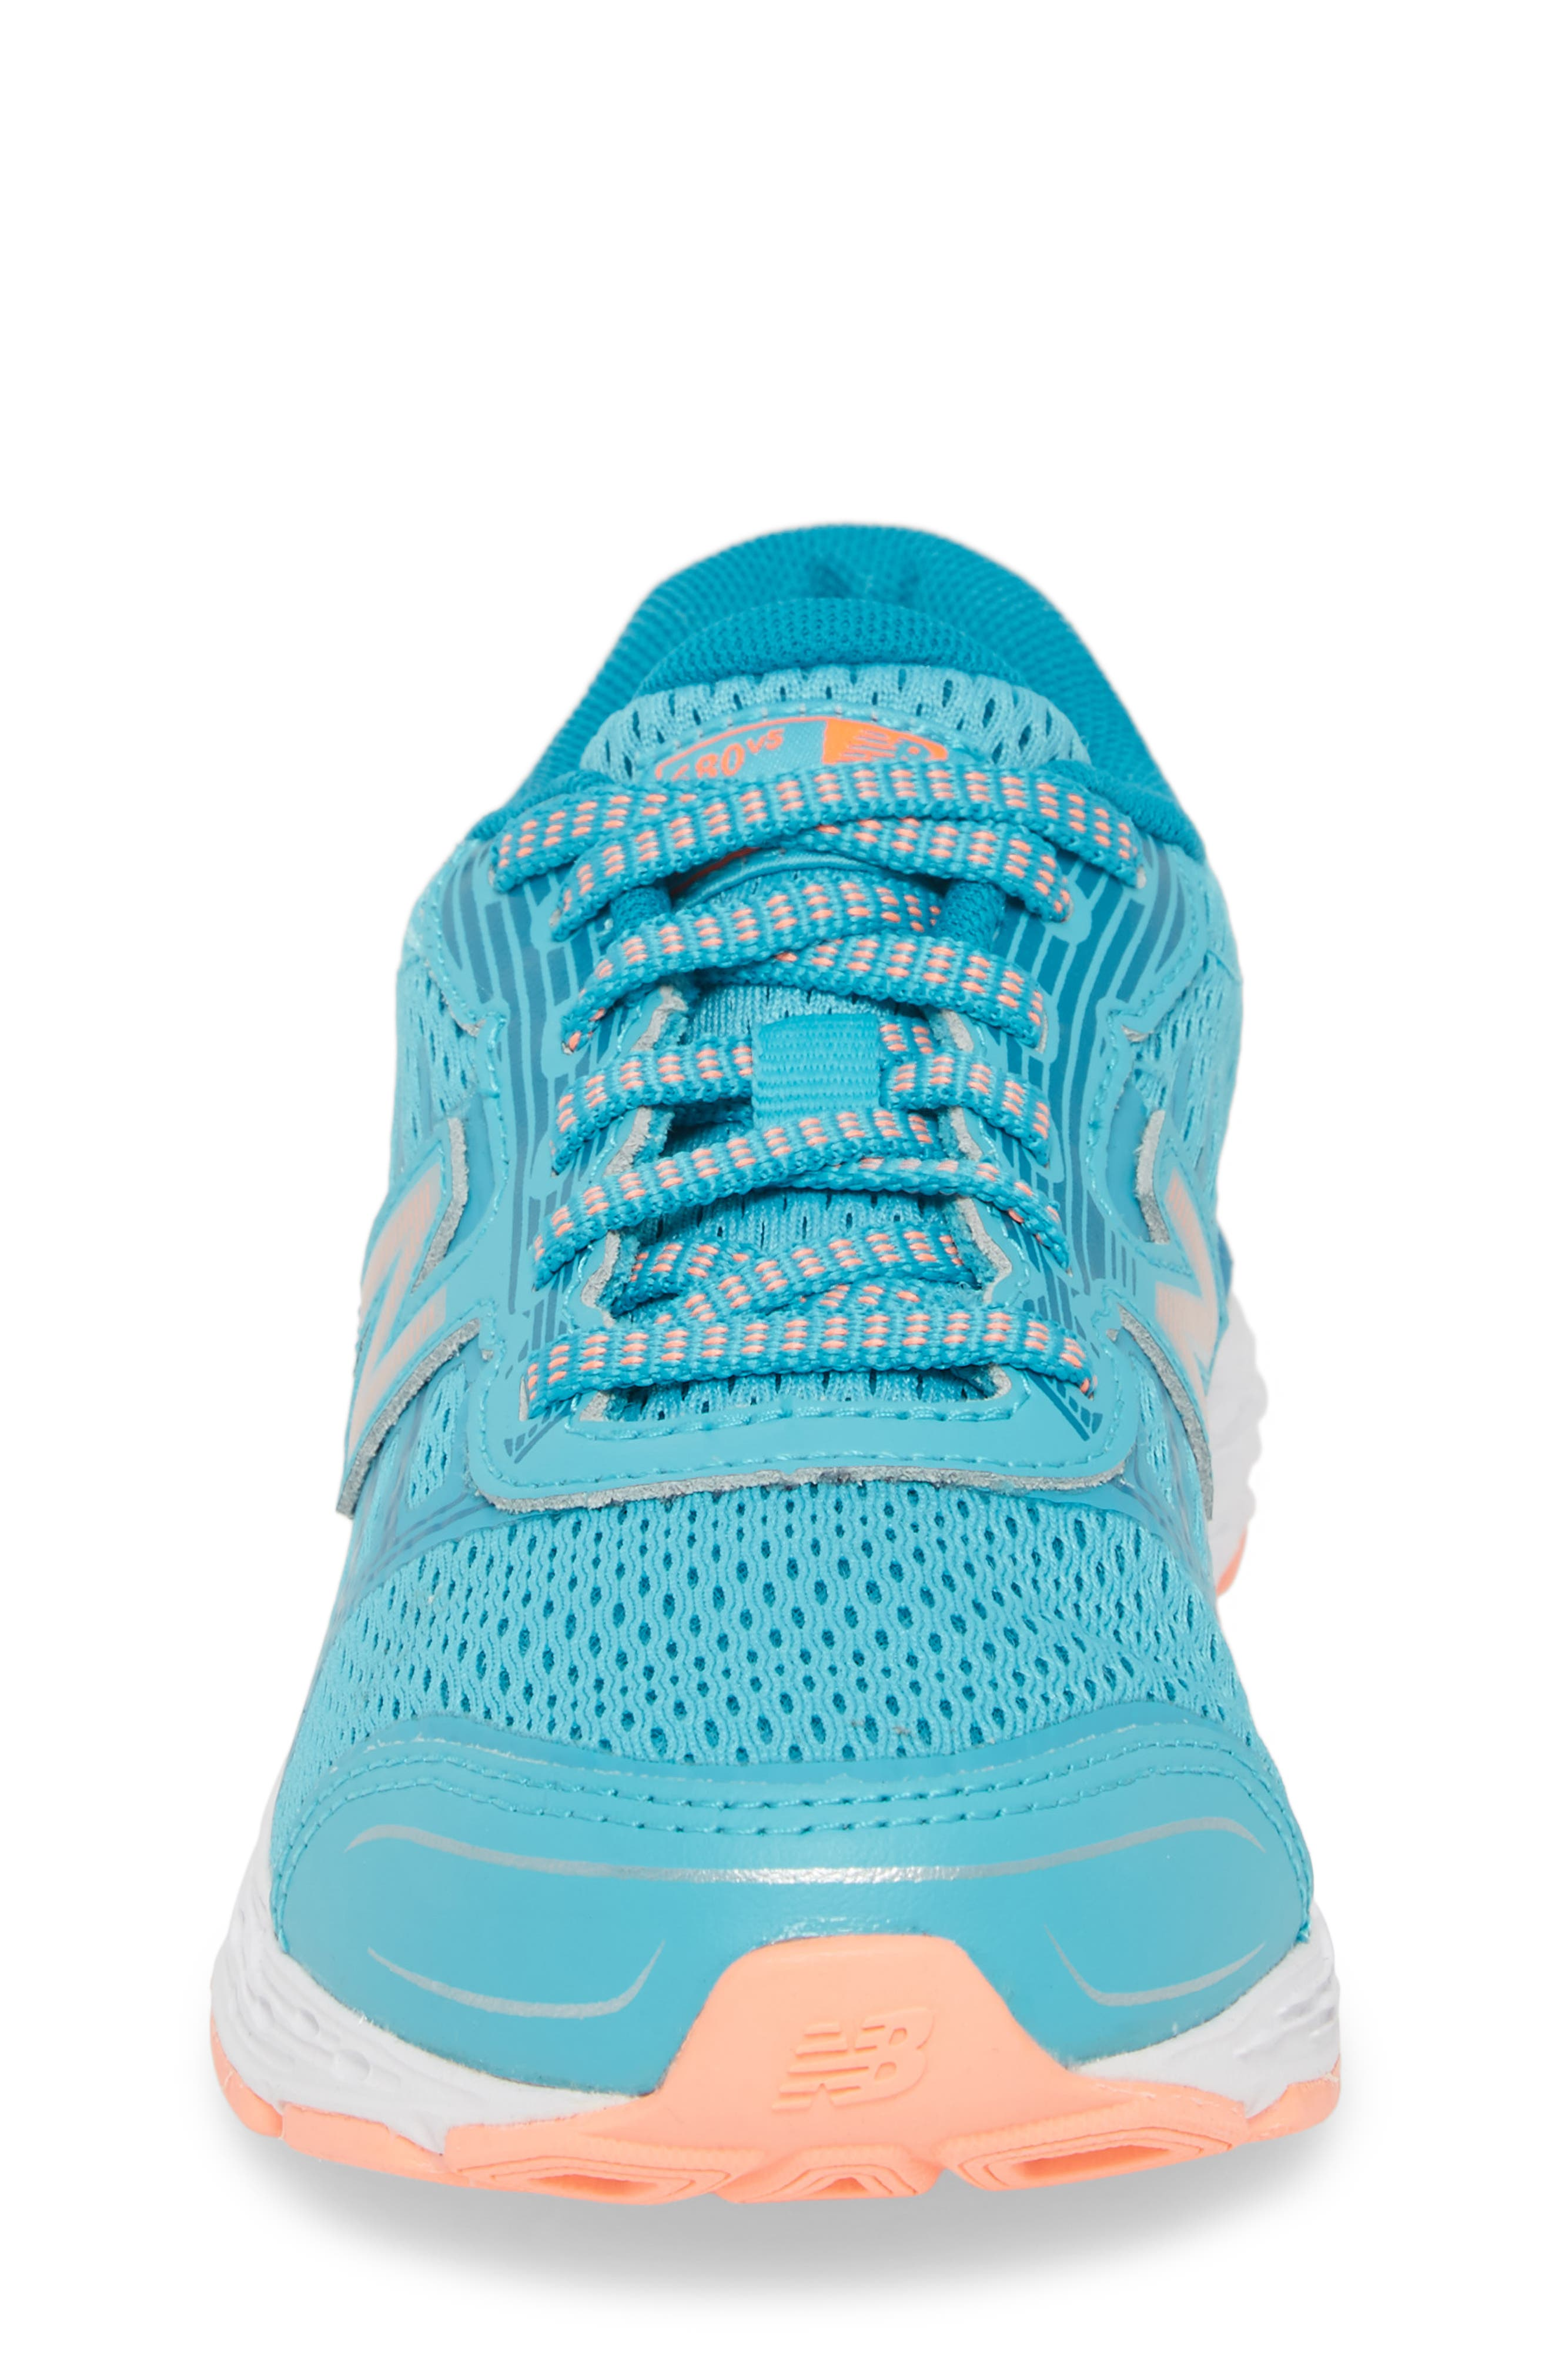 680v5 Running Shoe,                             Alternate thumbnail 4, color,                             DEEP OZONE BLUE